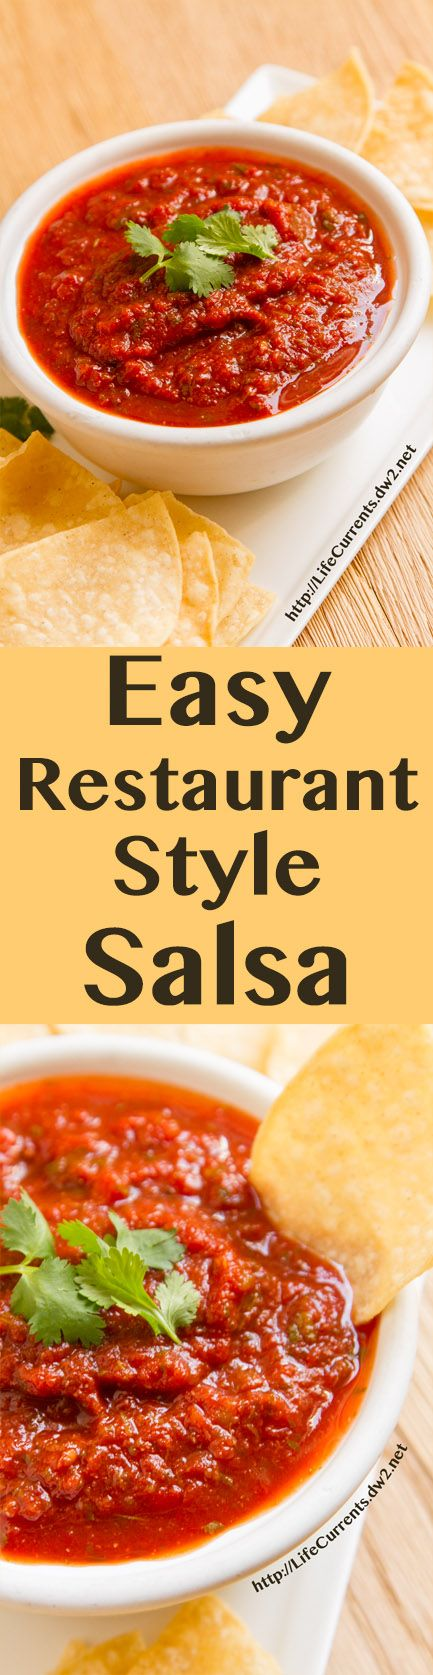 Easy Restaurant Style Salsa is made with canned crushed tomatoes so it's super easy to whip together